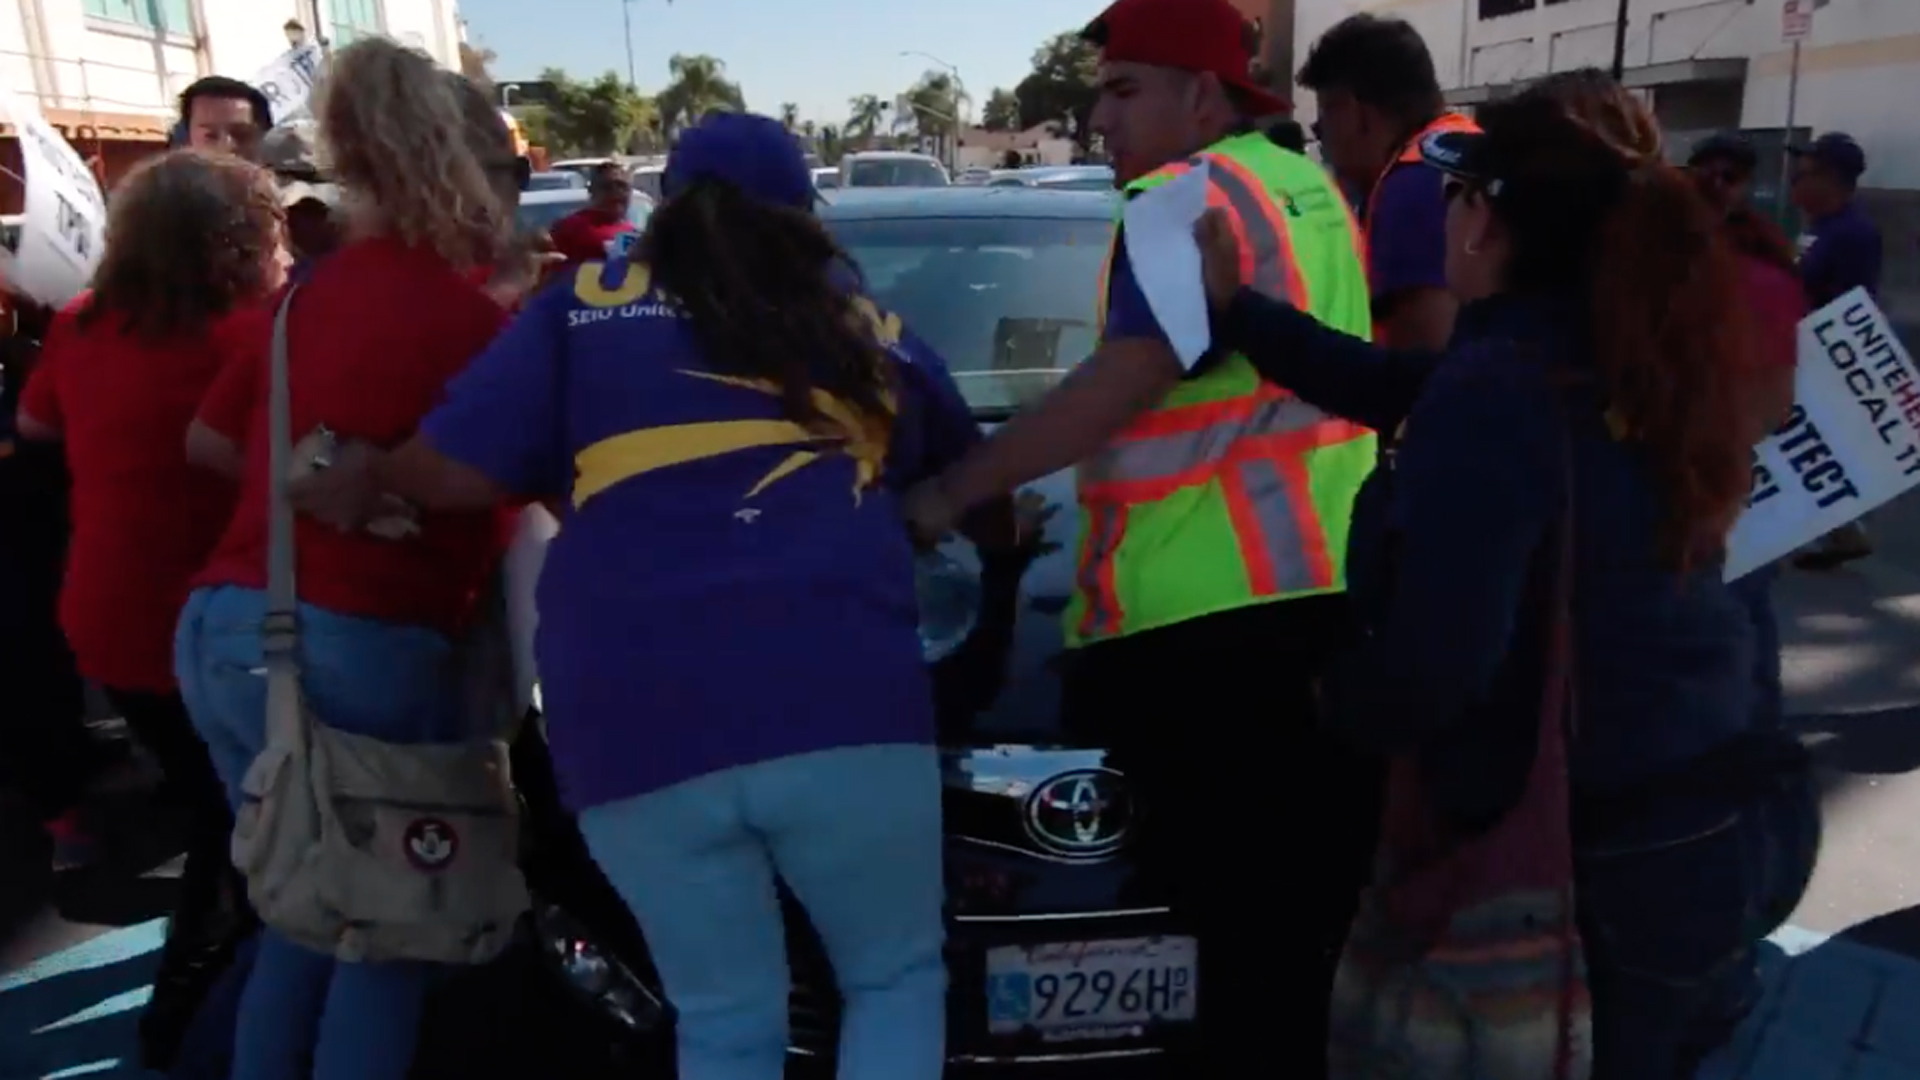 A still image from a video shows a car attempting to drive through a group of protesters in Brea on Oct. 26, 2017. (Credit: Antonio Mendoza / UNITE HERE Local 11)